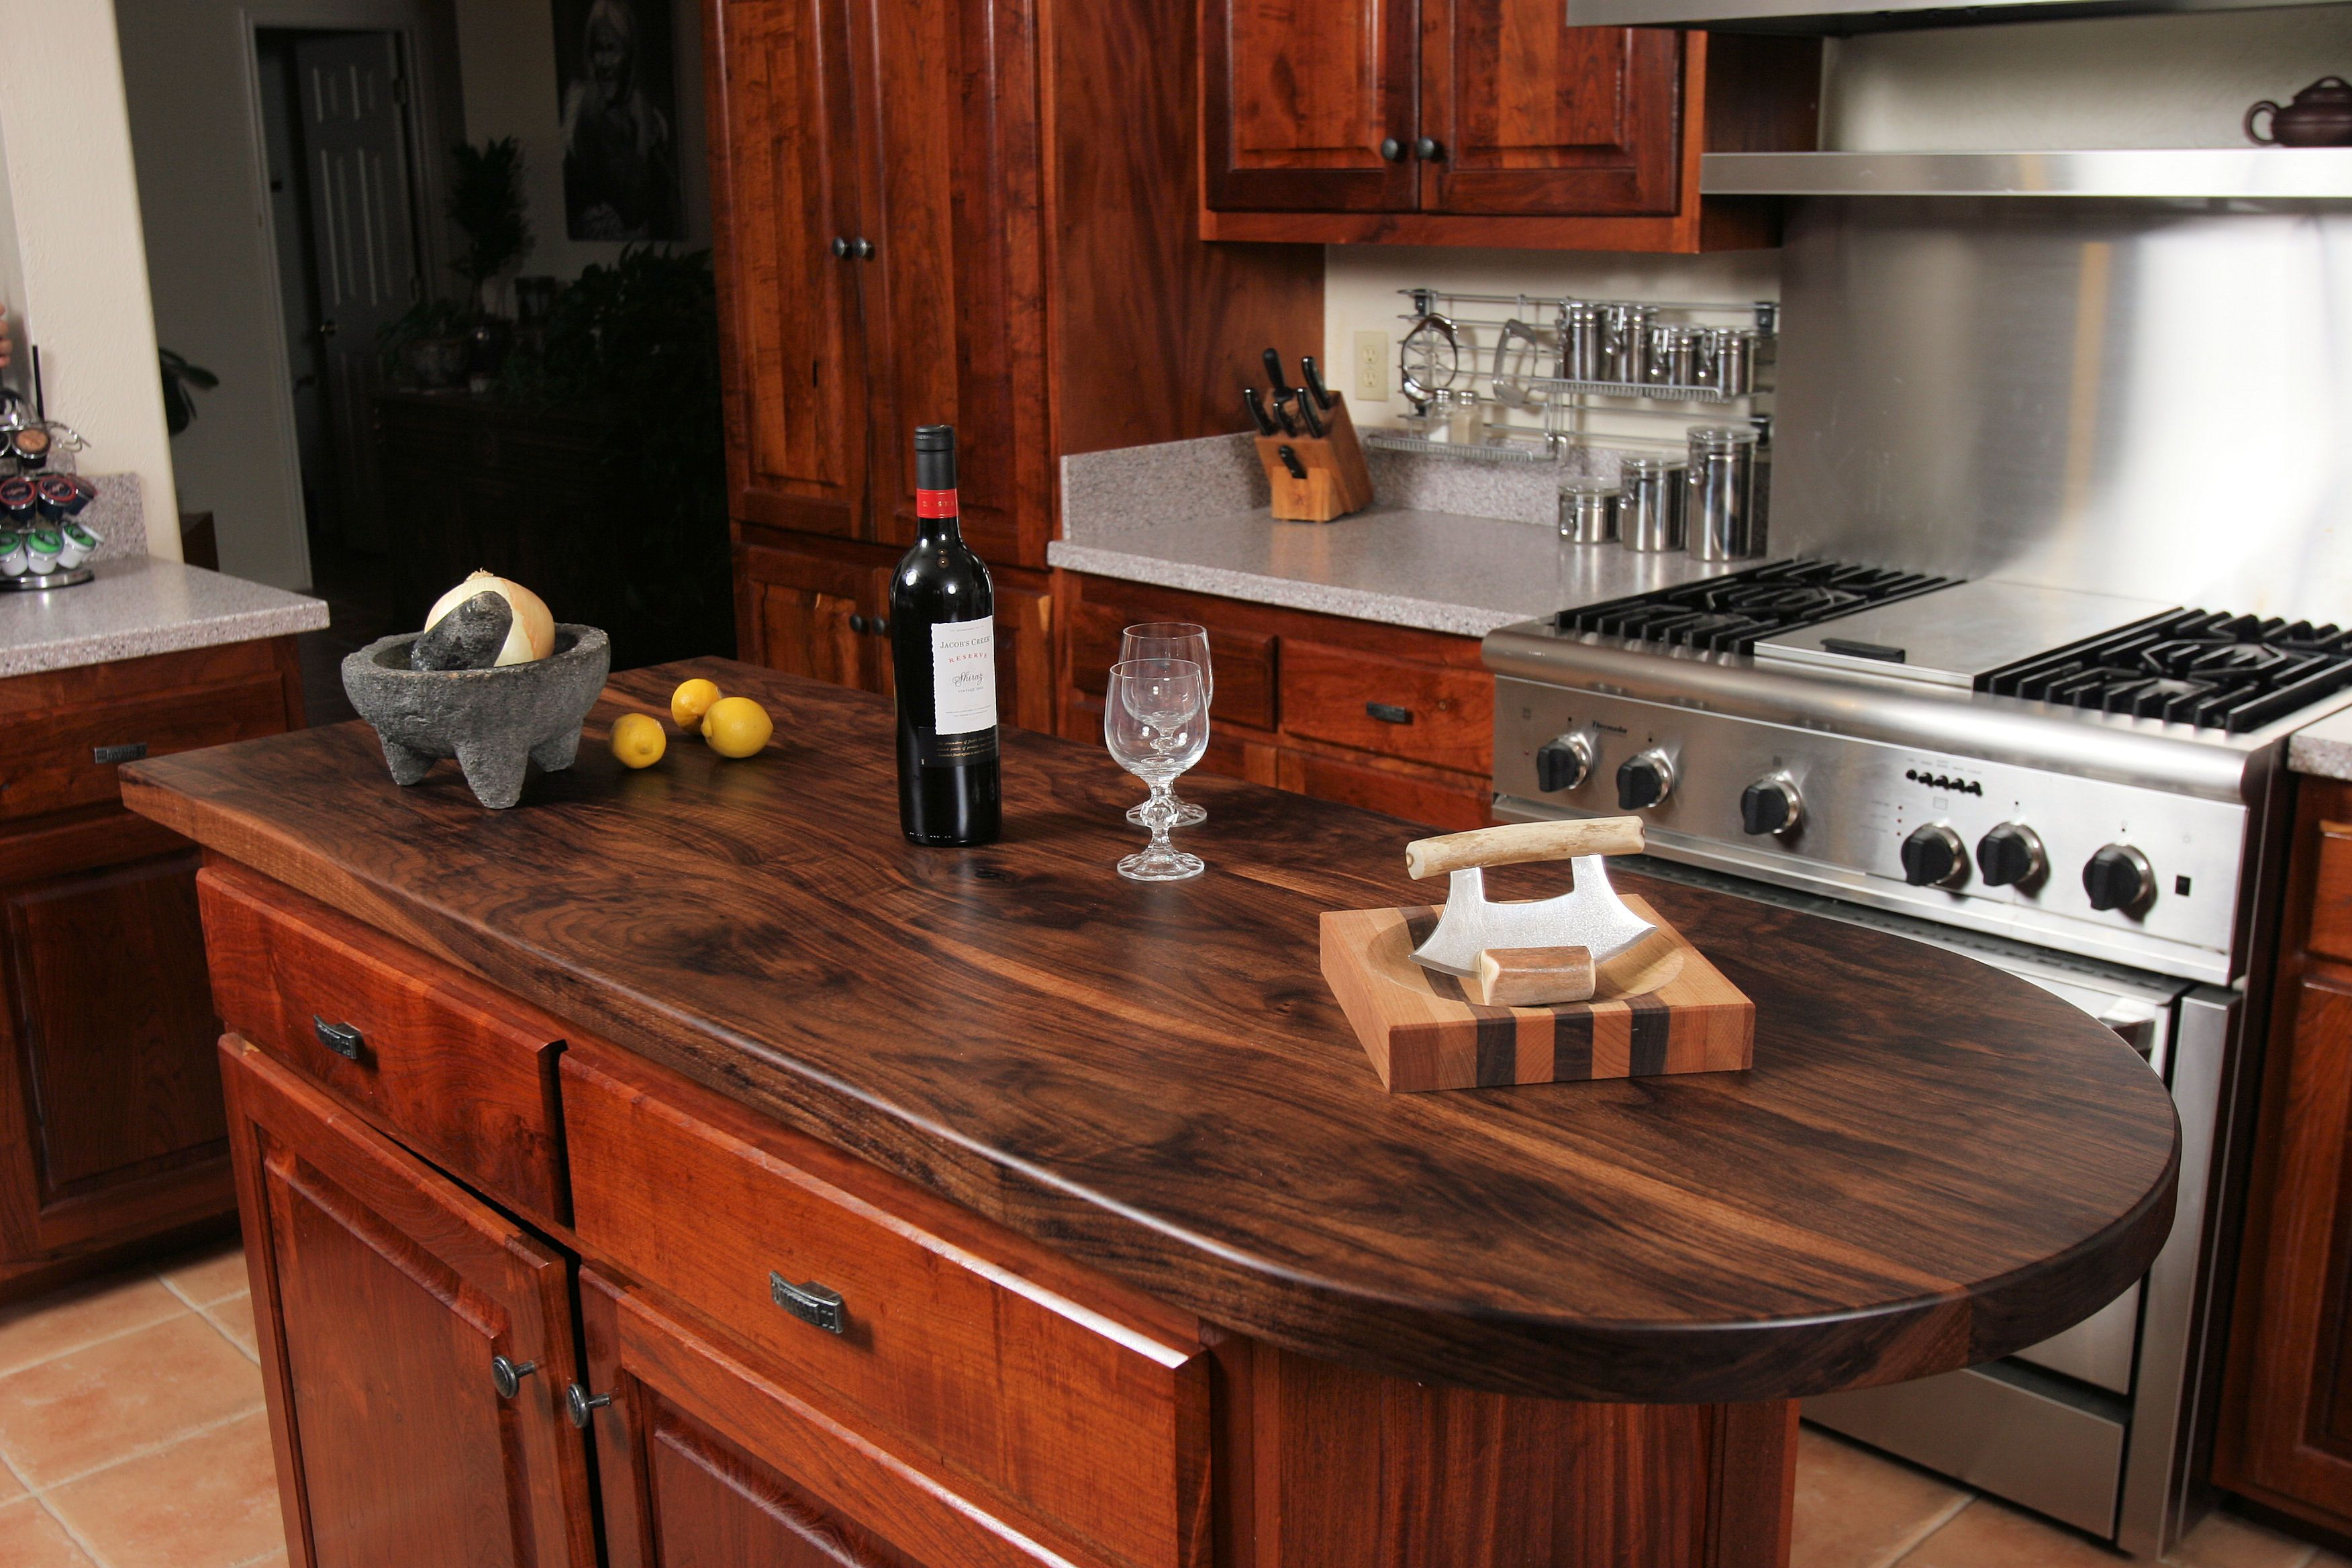 Best Kitchen Gallery: Custom Wood Countertop Options Finishes of 2x4 Kitchen Counter on rachelxblog.com